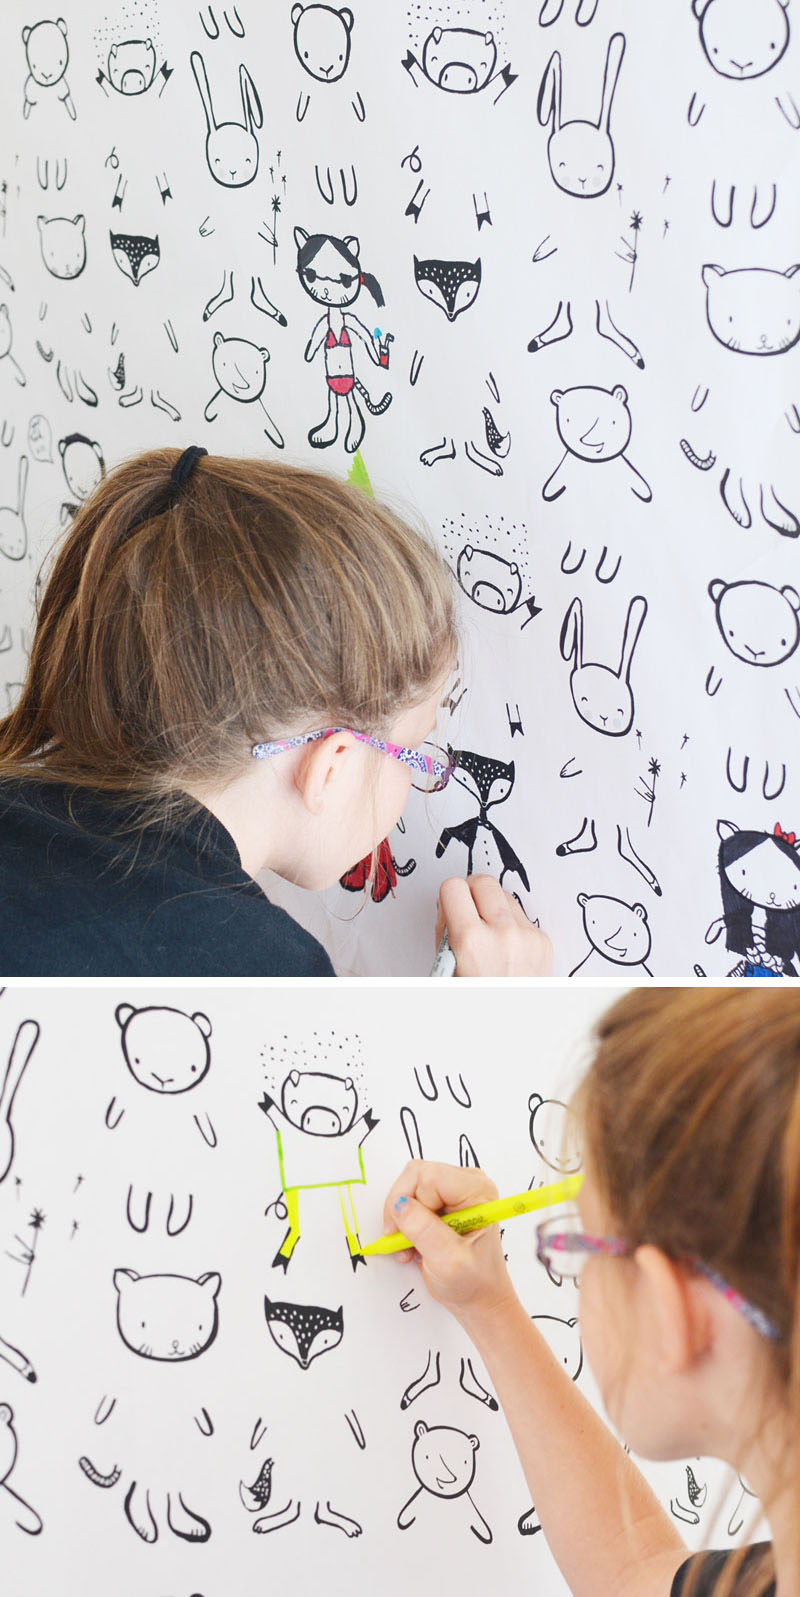 Here's a cute bedroom decorating idea, install fun kids wallpaper that let's them fill-in-the-blanks.